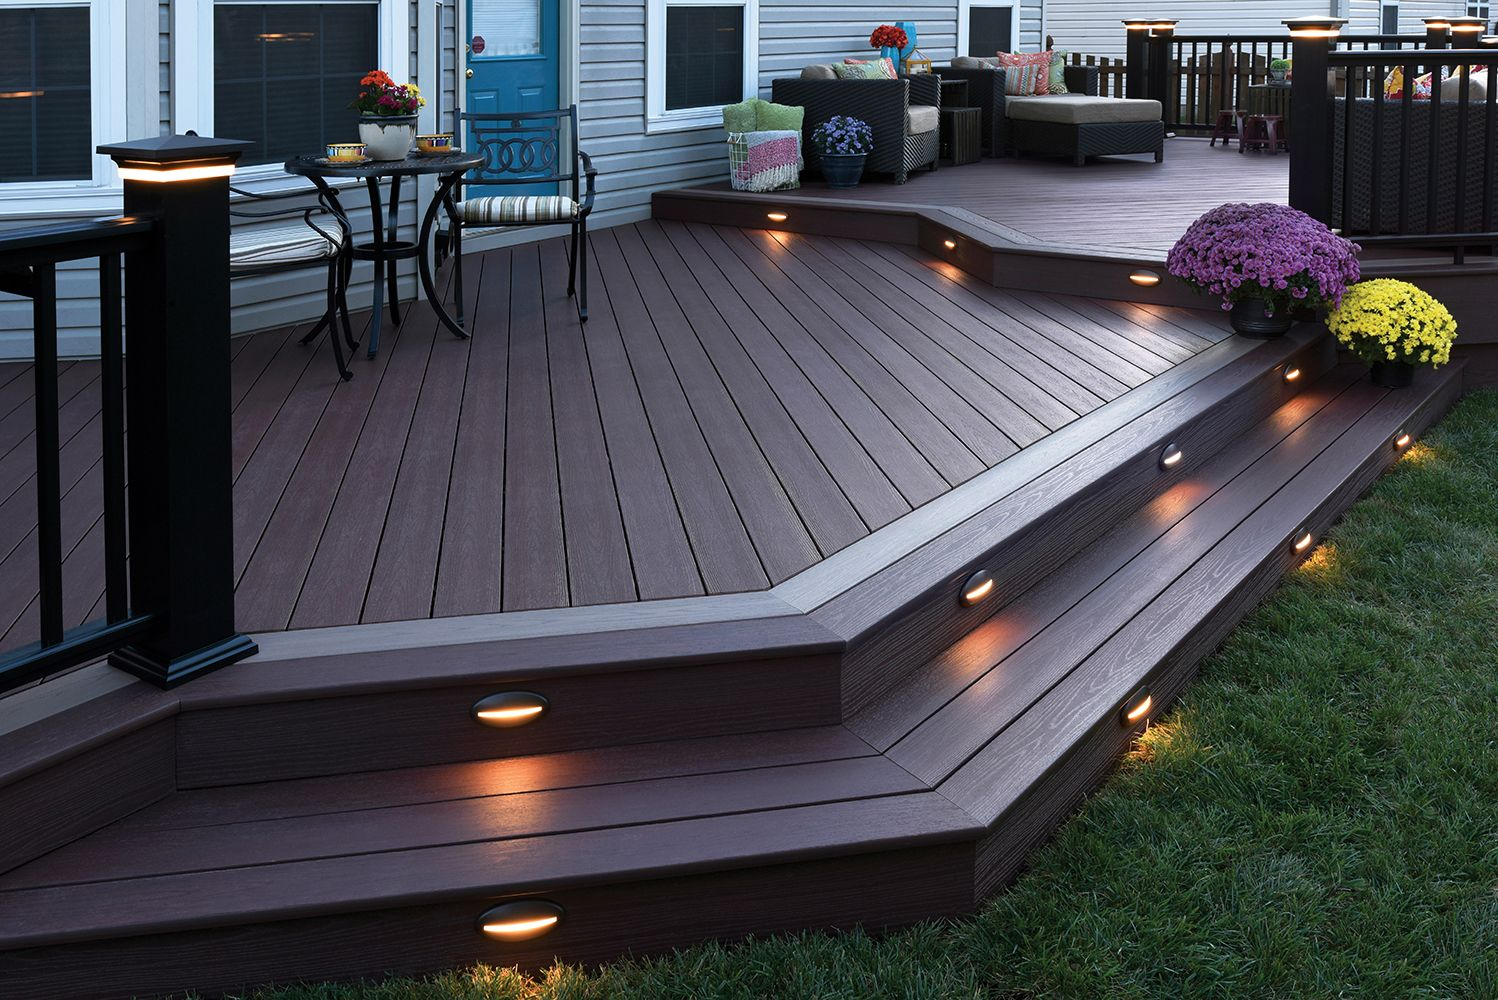 10 Modern Deck Design Ideas for 2019 - Deck Cost Guide on Cost Of Backyard Remodel id=89686